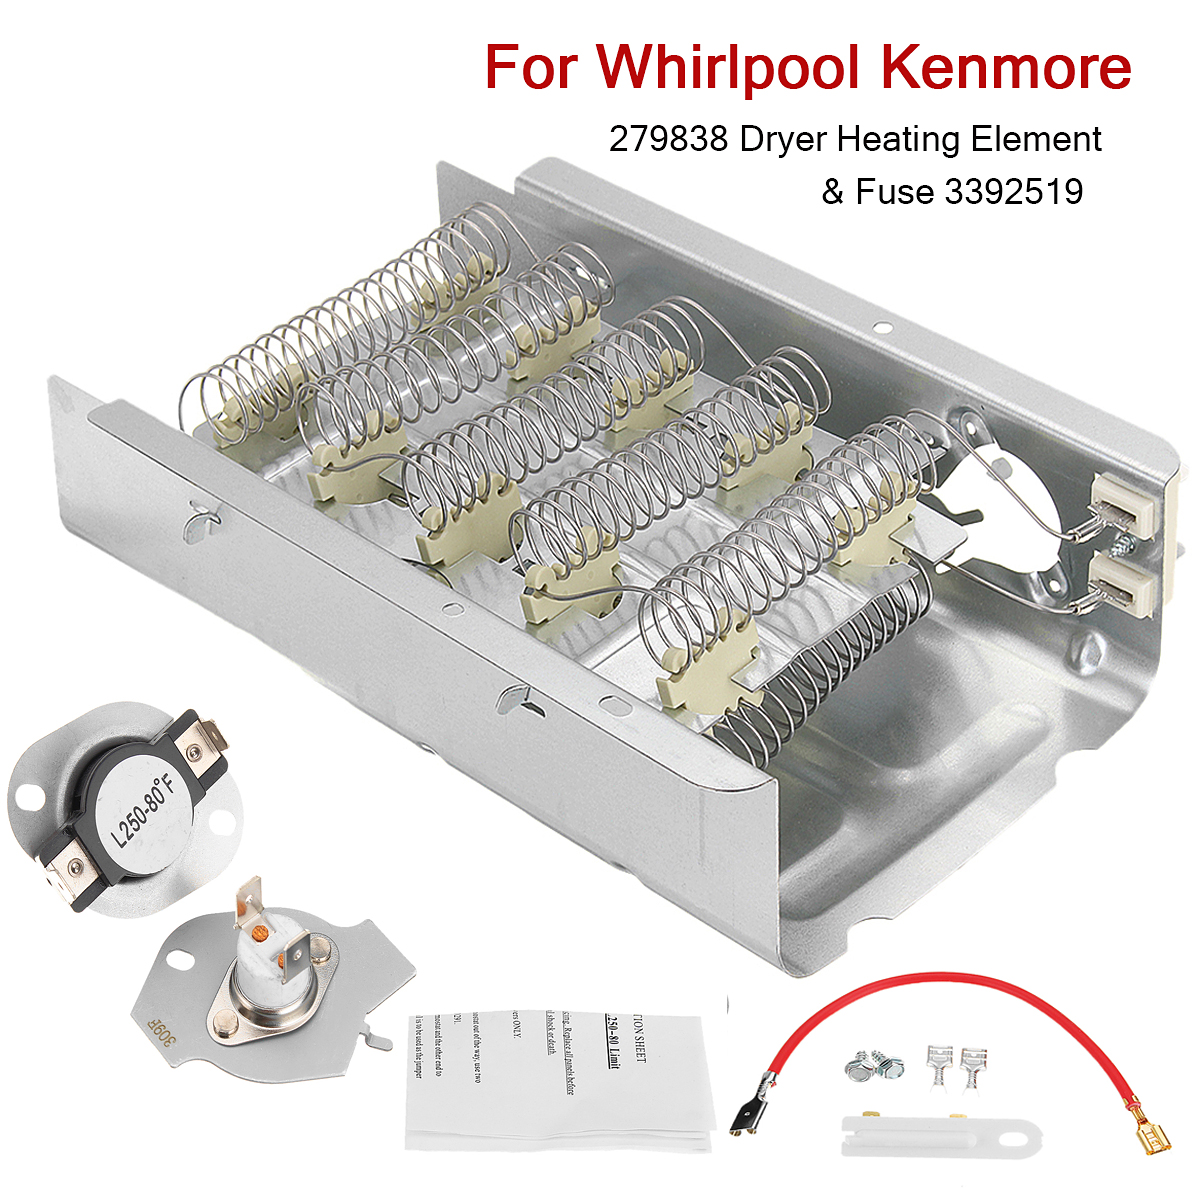 279838 Dryer Heating Element Thermostat Kit Fuse 3392519 For Box Whirlpool Kenmore In Clothes Parts From Home Appliances On Alibaba